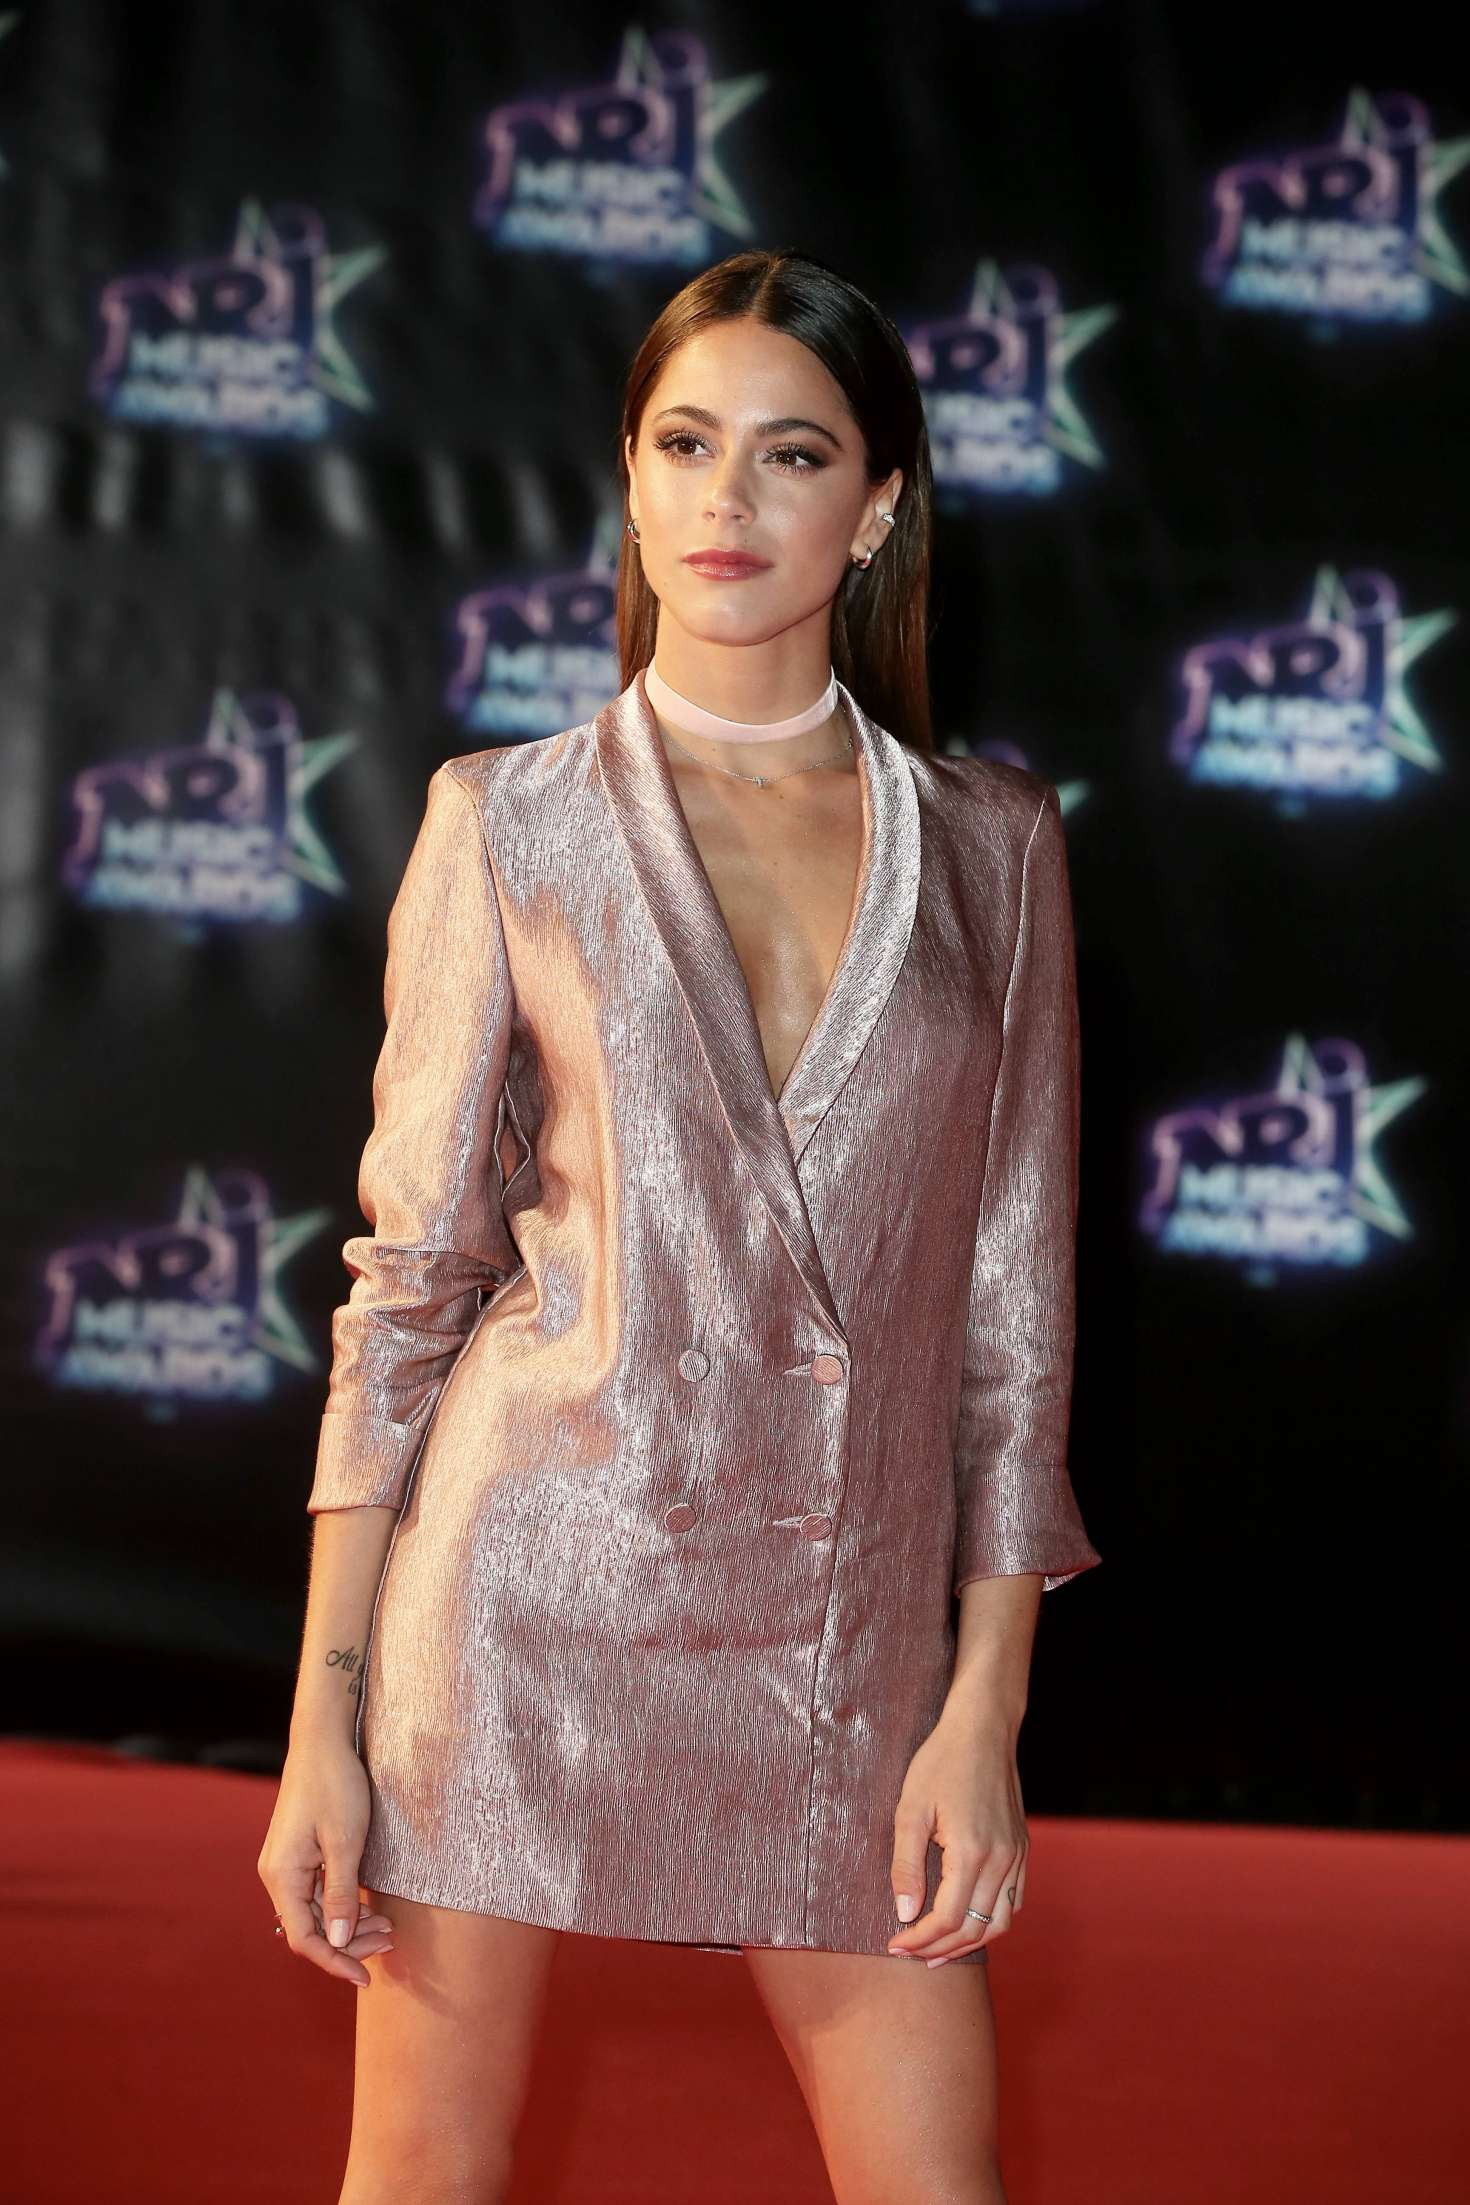 http://www.gotceleb.com/wp-content/uploads/photos/martina-stoessel/nrj-music-awards-2016-in-cannes/Martina-Stoessel:-NRJ-Music-Awards-2016--05.jpg